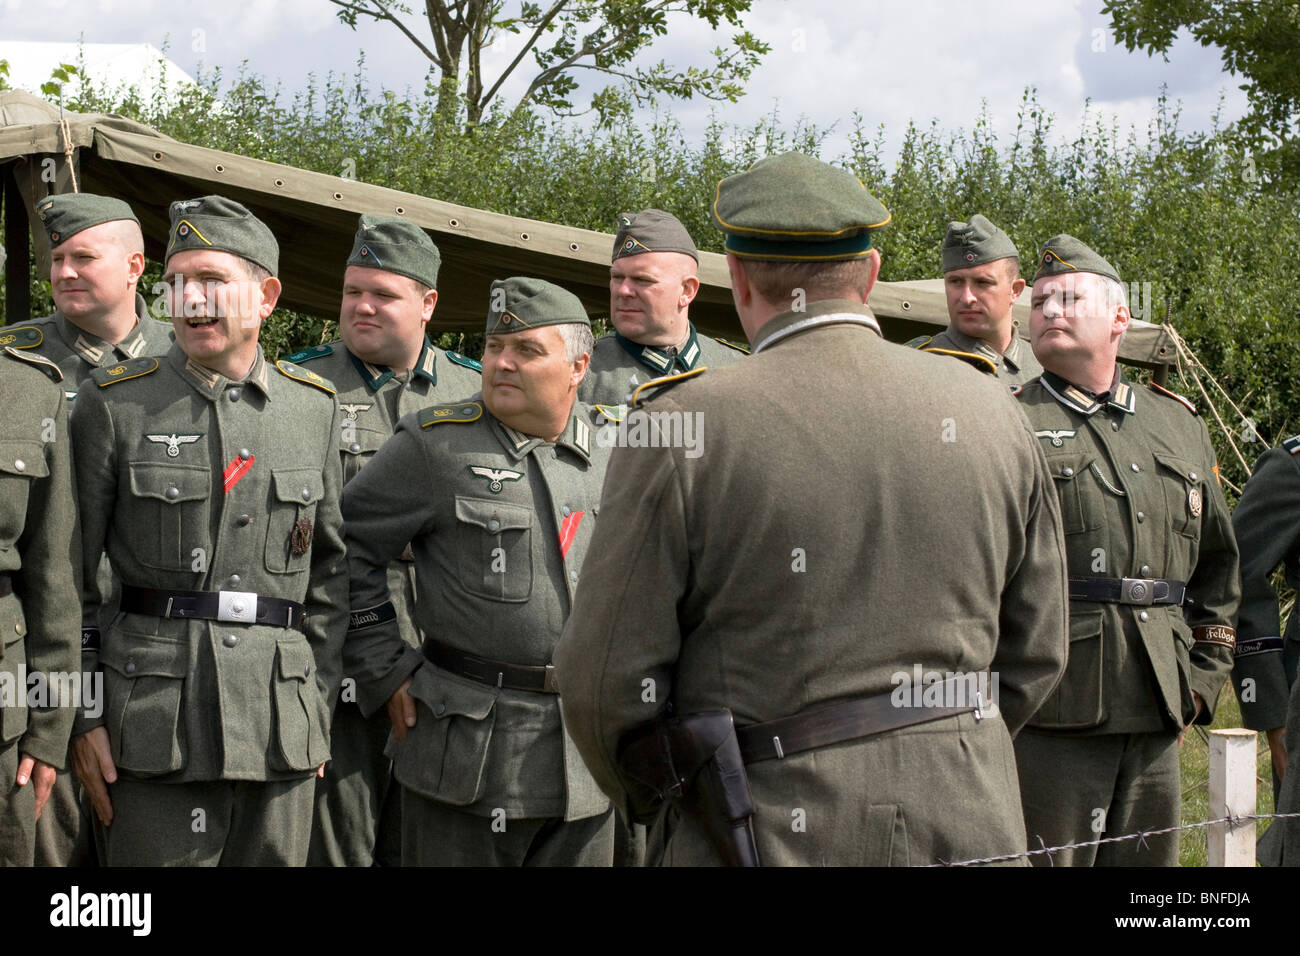 A reenactment of the German army - Stock Image